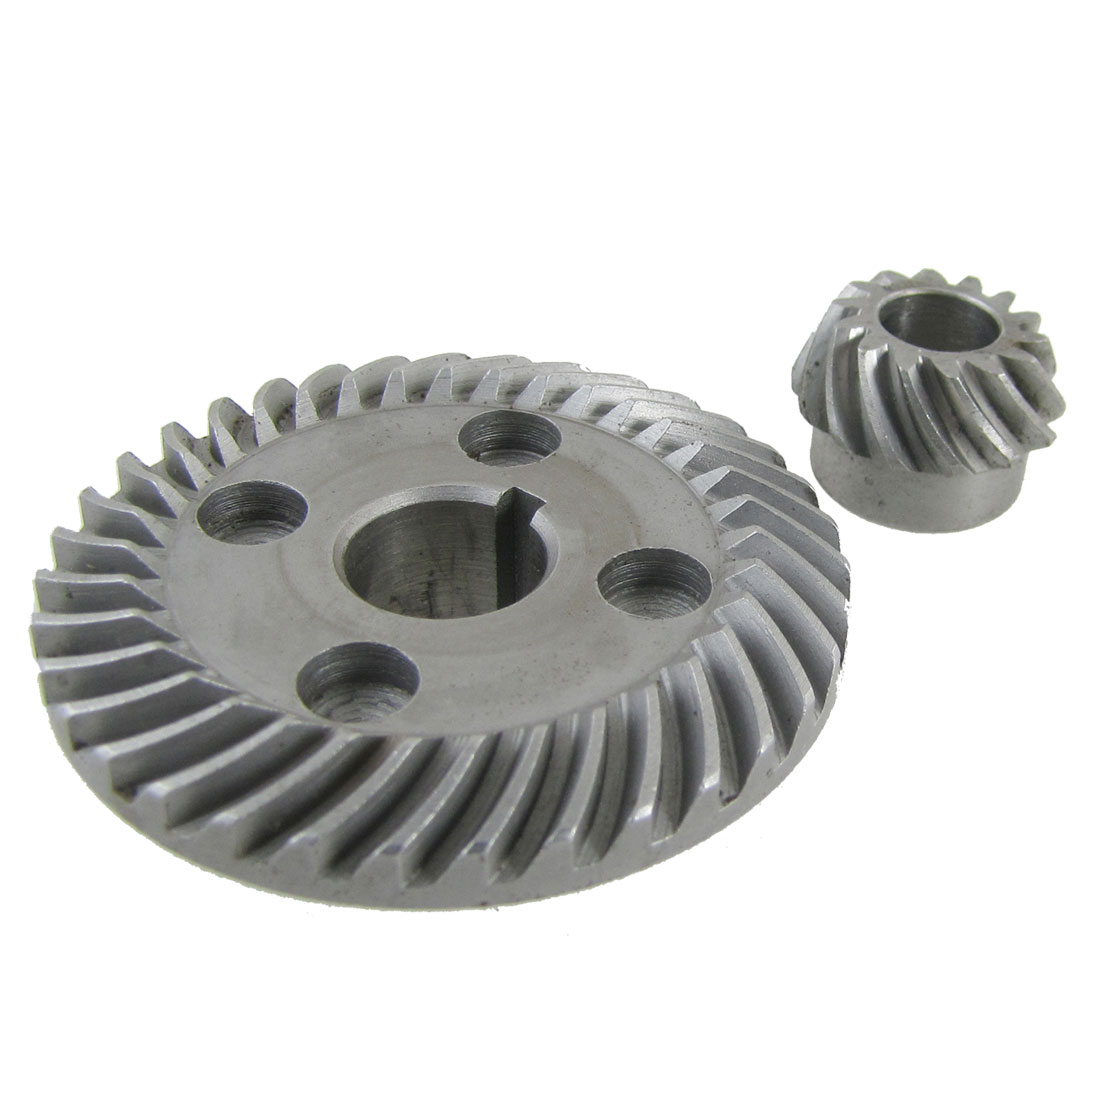 2 Pcs Angle Grinder Spiral Bevel Ring Pinion Gear Set for Hitachi 100